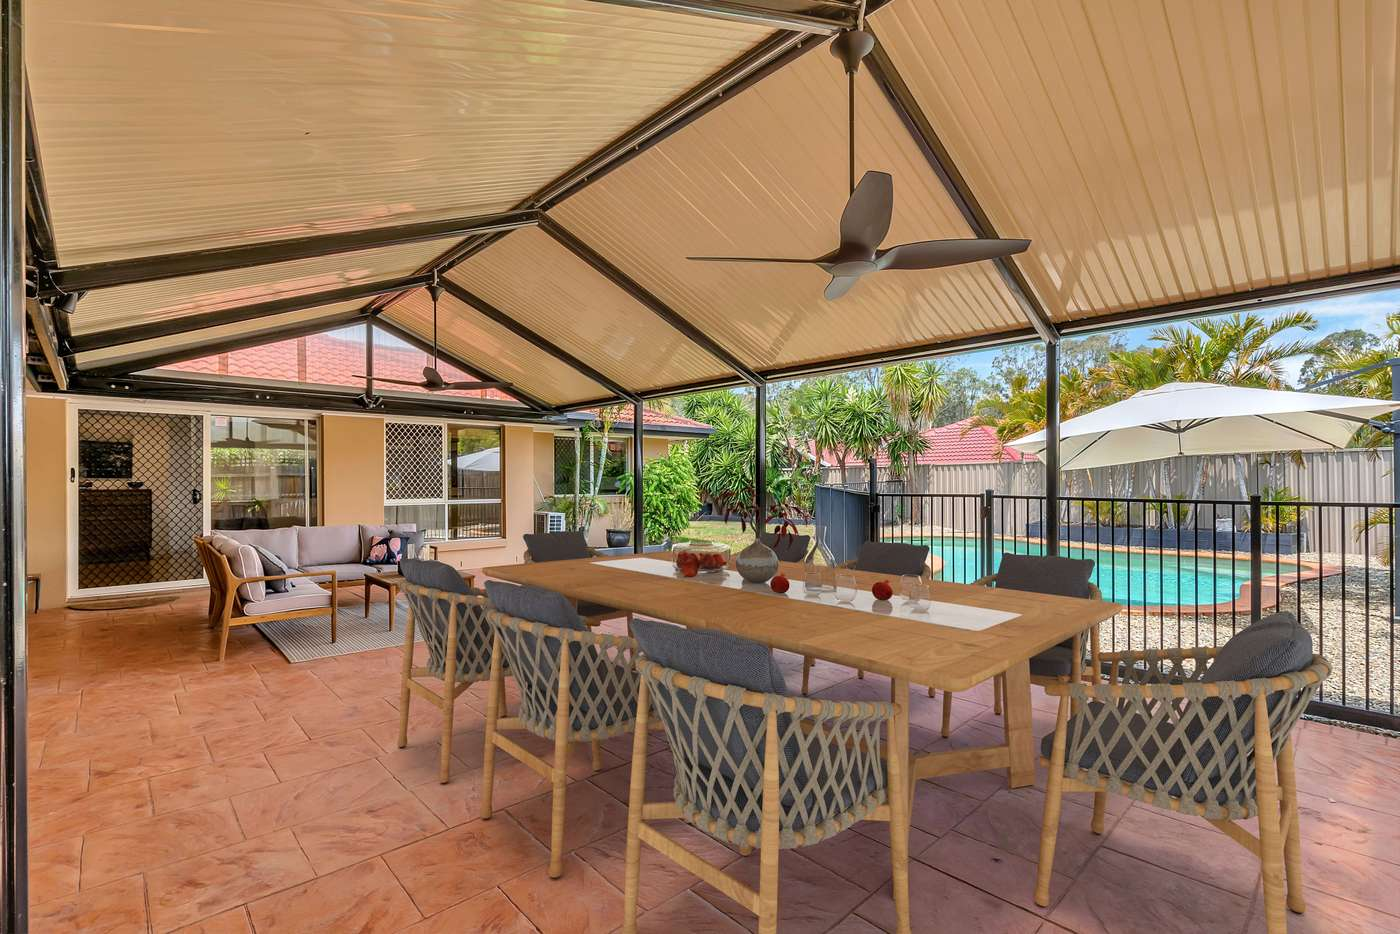 Main view of Homely house listing, 1 Ardath Close, Parkwood QLD 4214